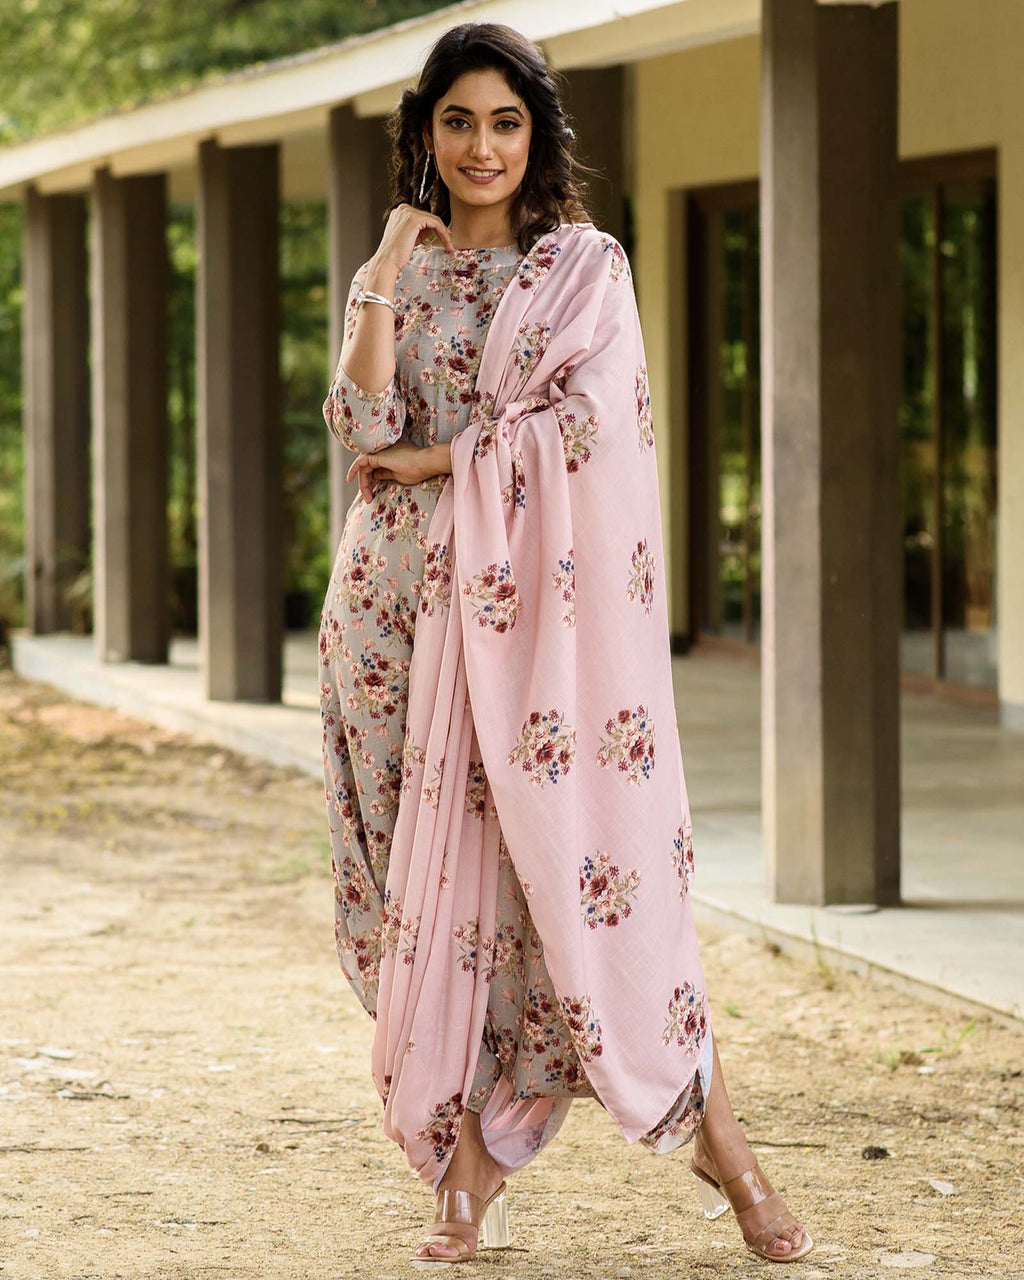 Laurel Green Dhoti Jumpsuit With A Detachable Carnation Pink Pallu - Riviera Closet